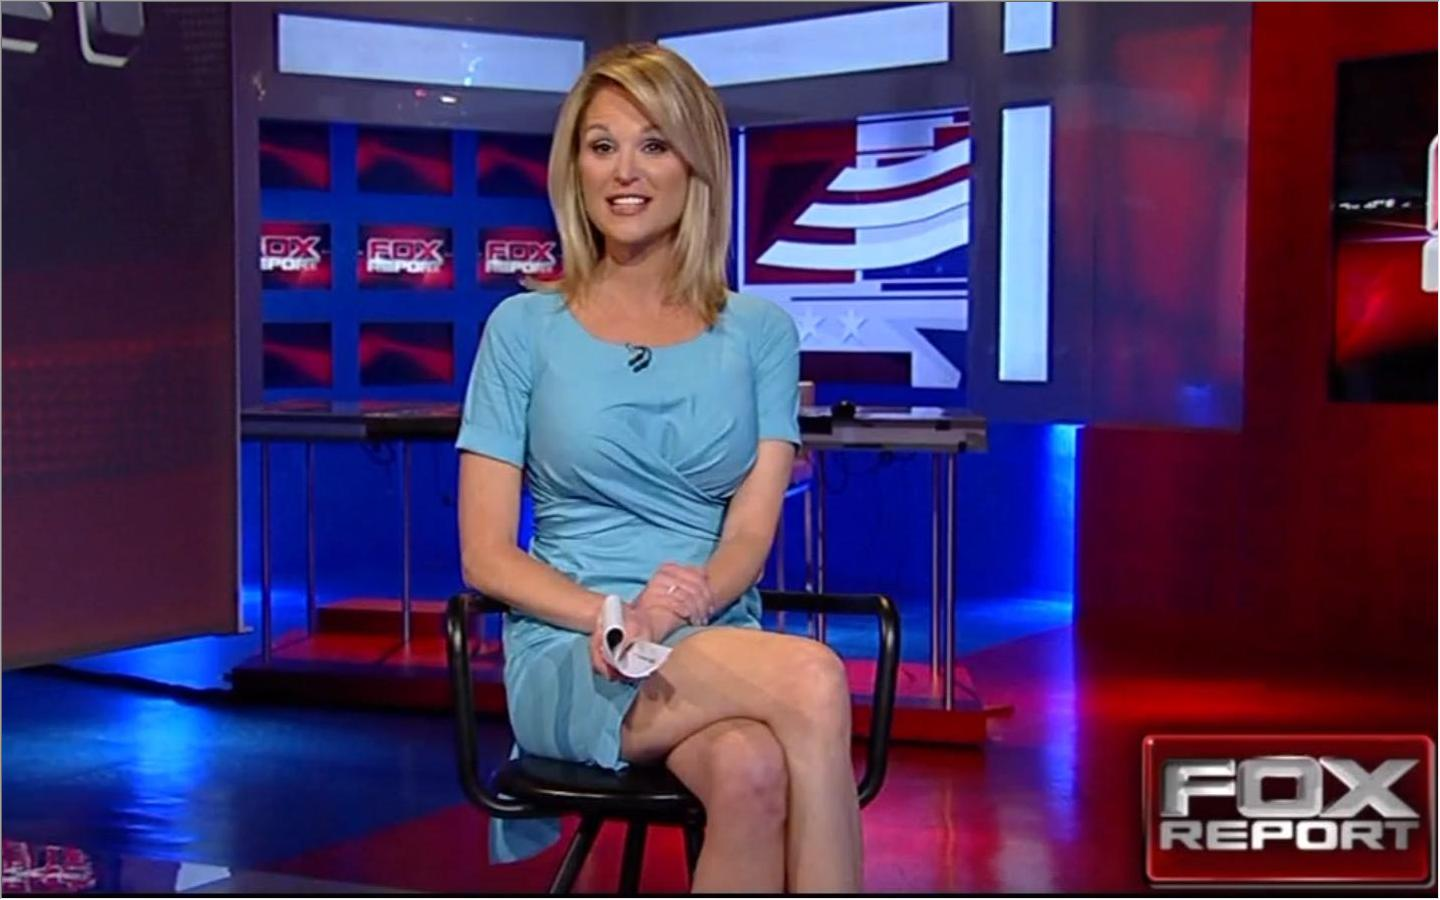 Reporter101 Blogspot: Other Fox News Ladies caps/photos/pictures.